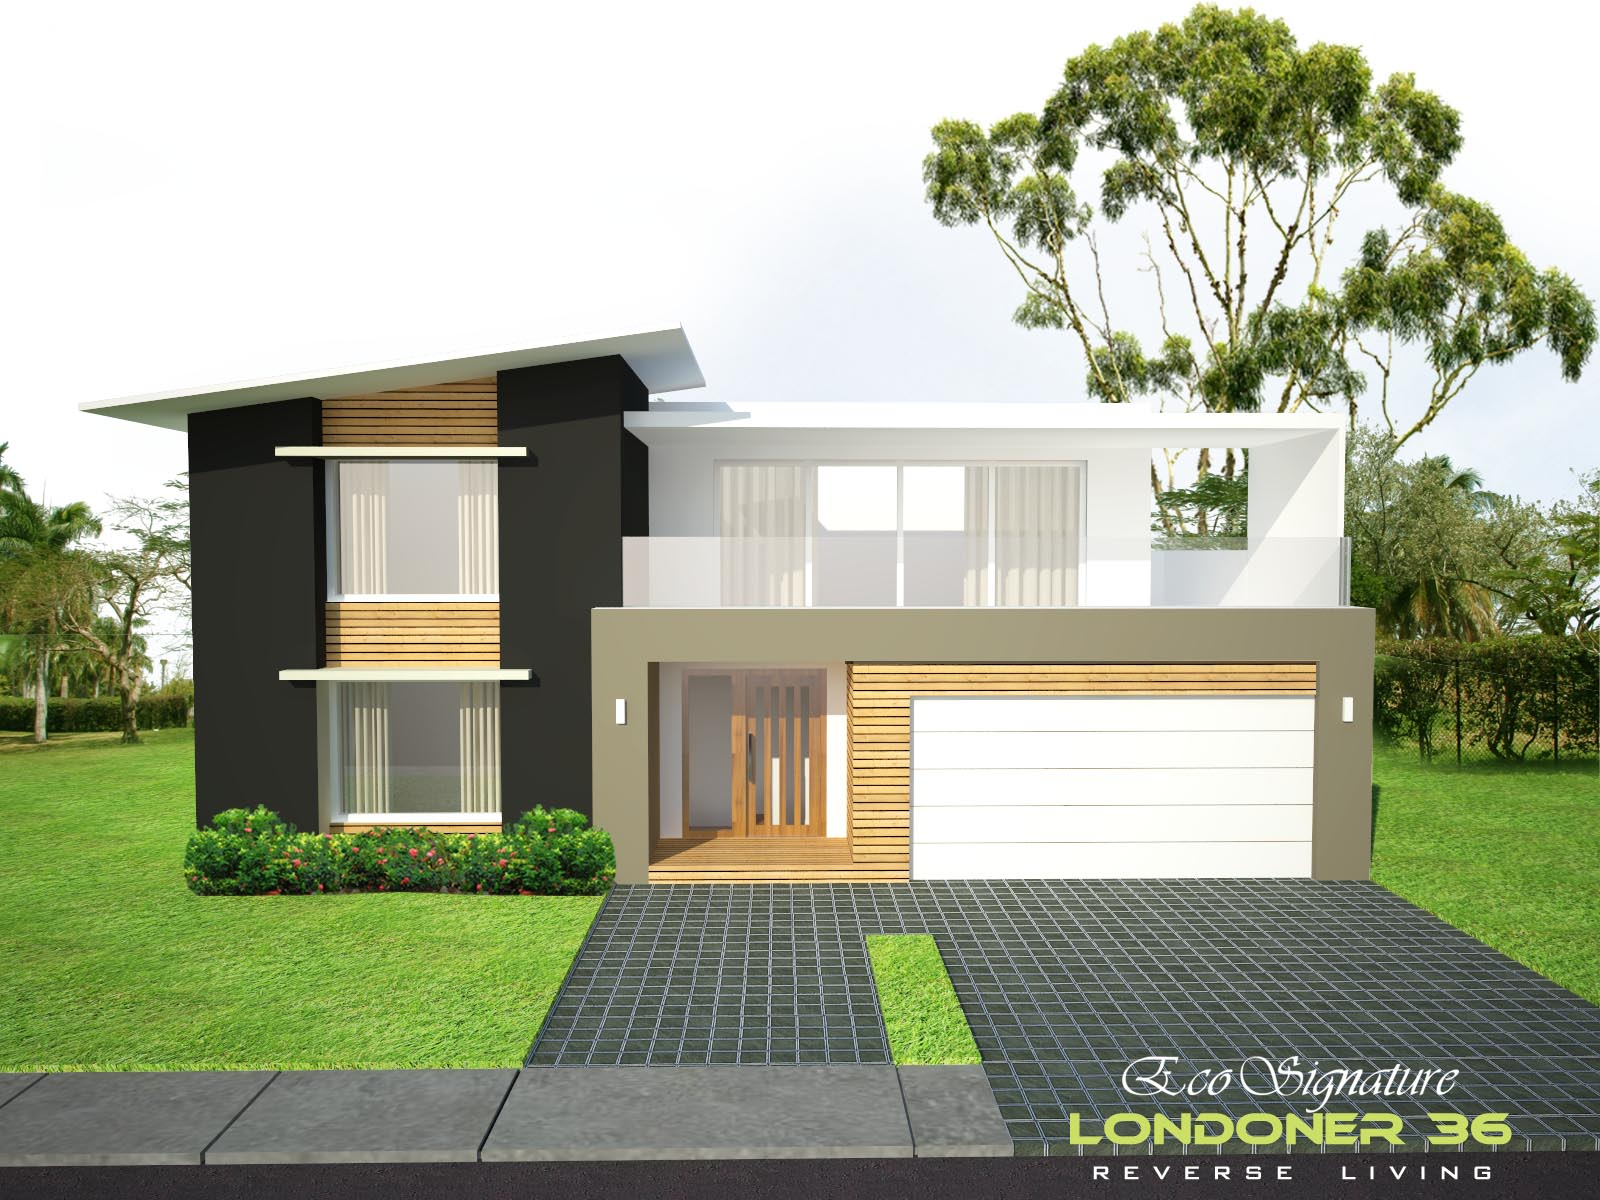 Londoner 37 eco signature reverse living for Sustainable home design plans